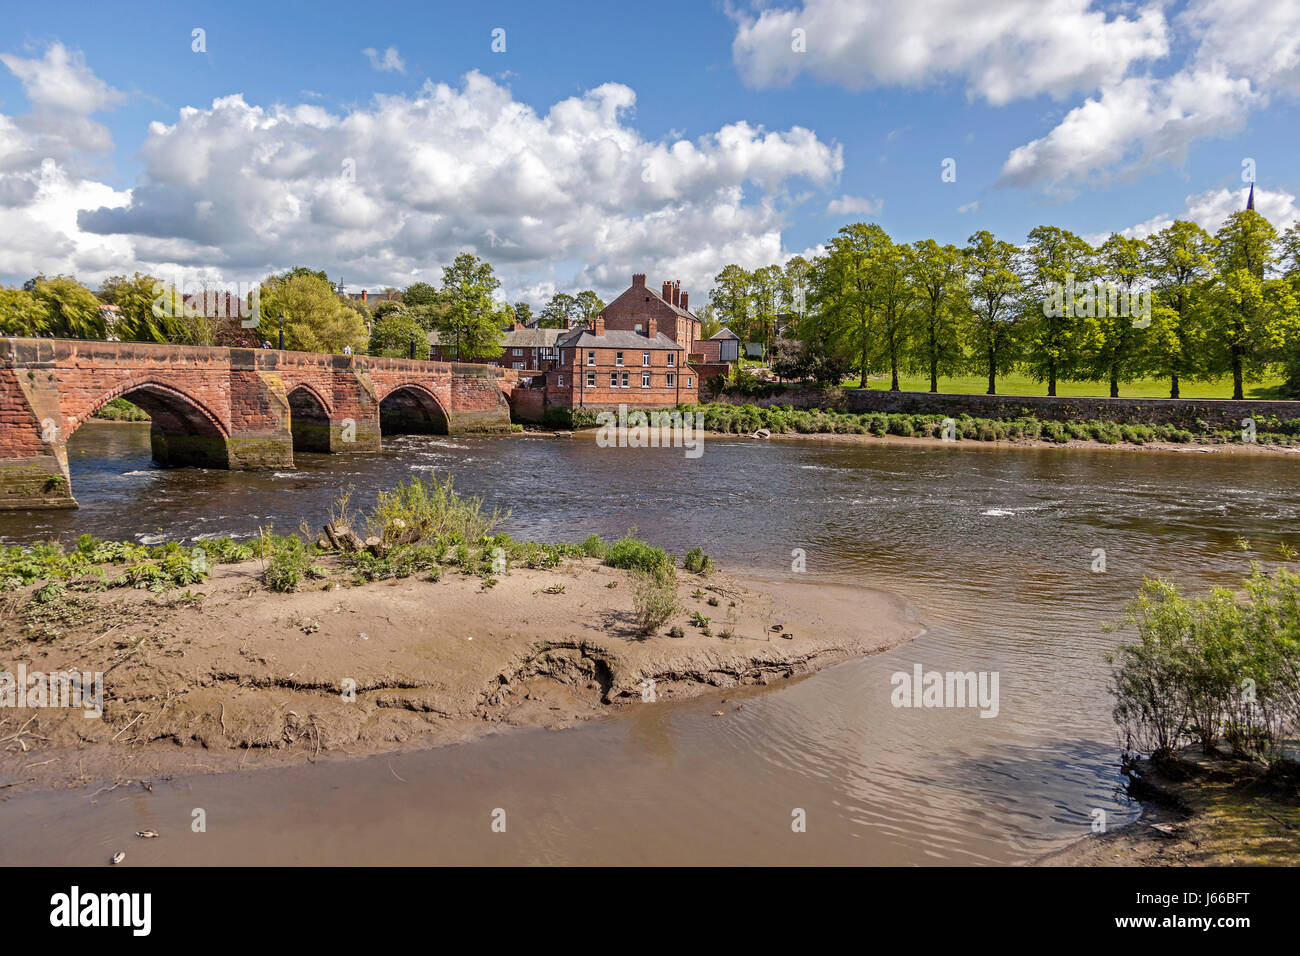 The bridge over the river Dee at Chester with Handbridge on the far bank. - Stock Image